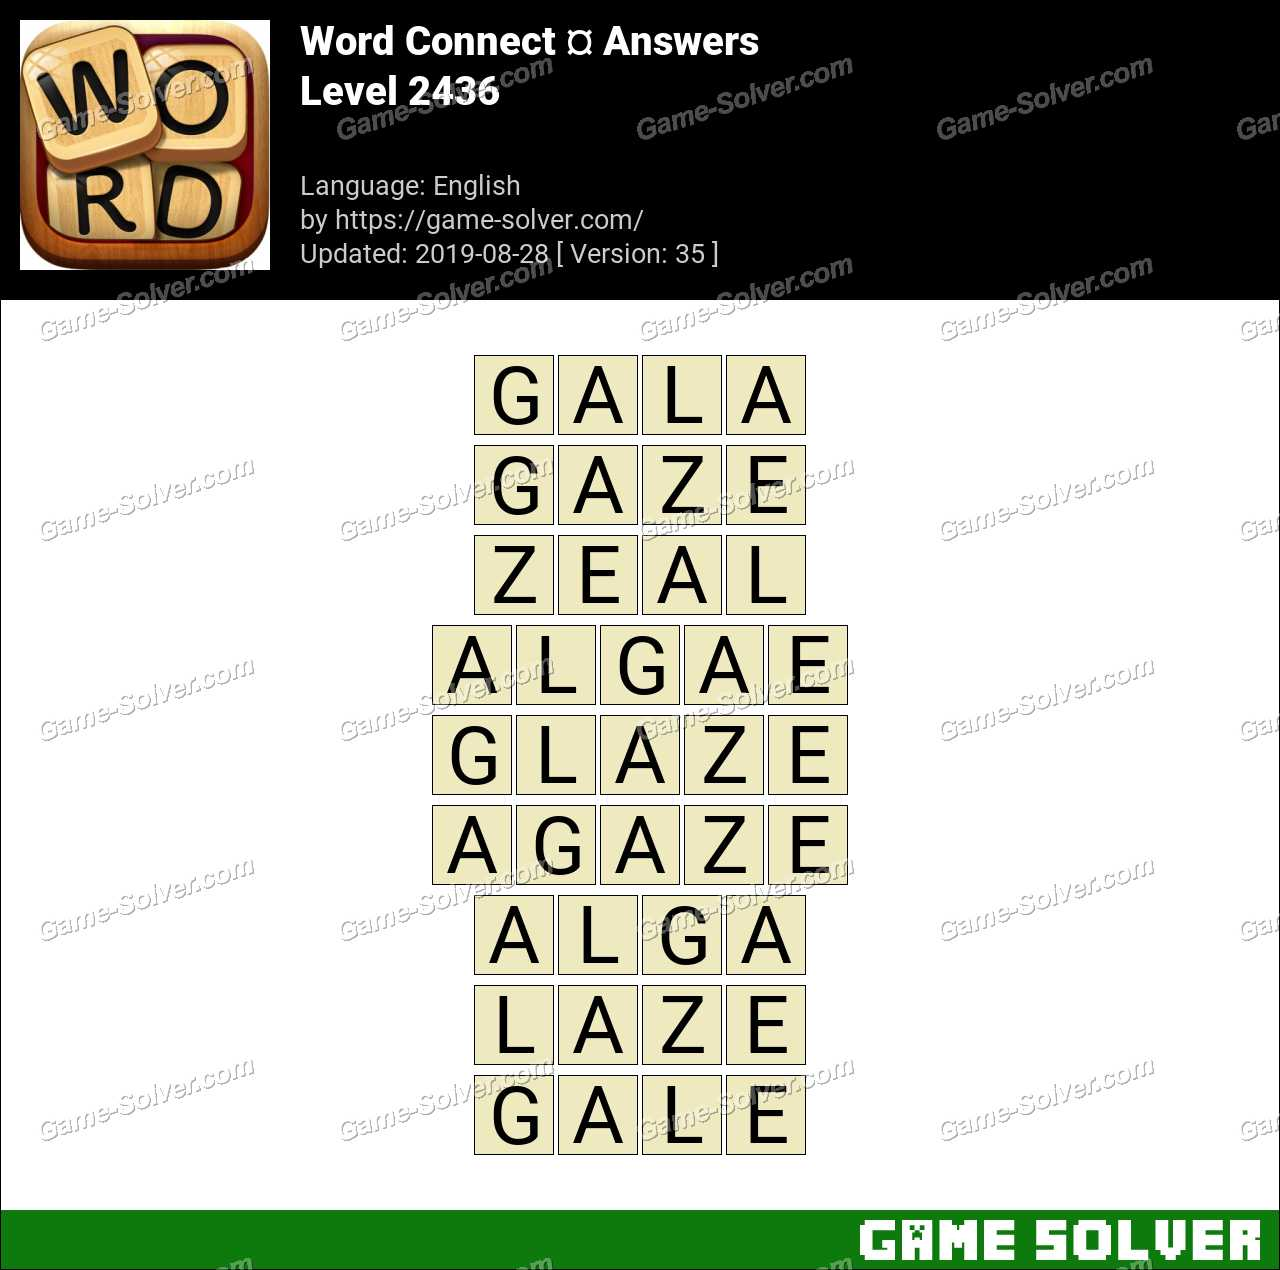 Word Connect Level 2436 Answers